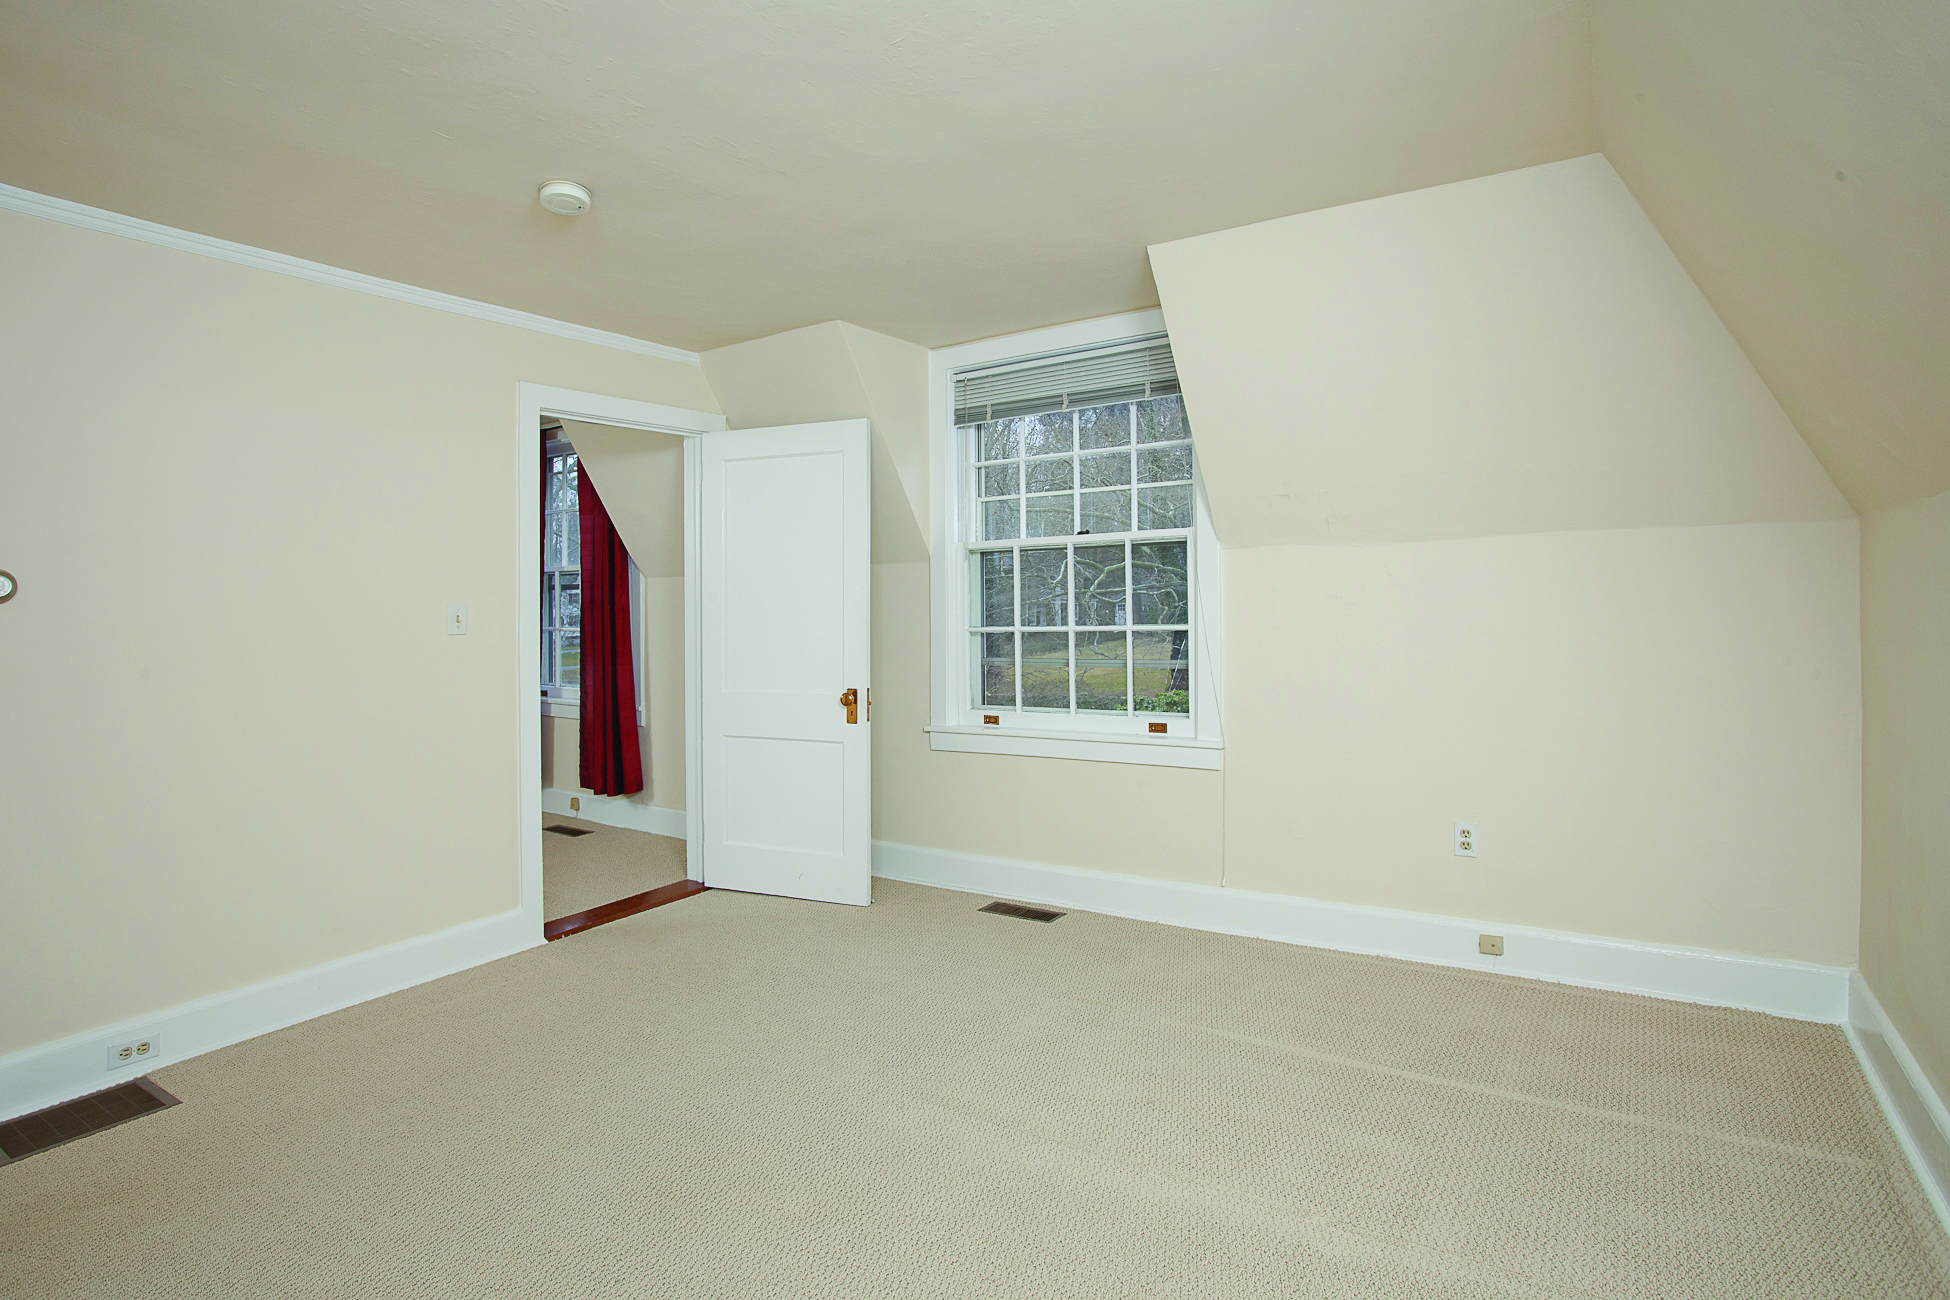 Additional photo for property listing at Charming Three Room Carriage Apartment 14 Battle Road Princeton, New Jersey 08540 United States